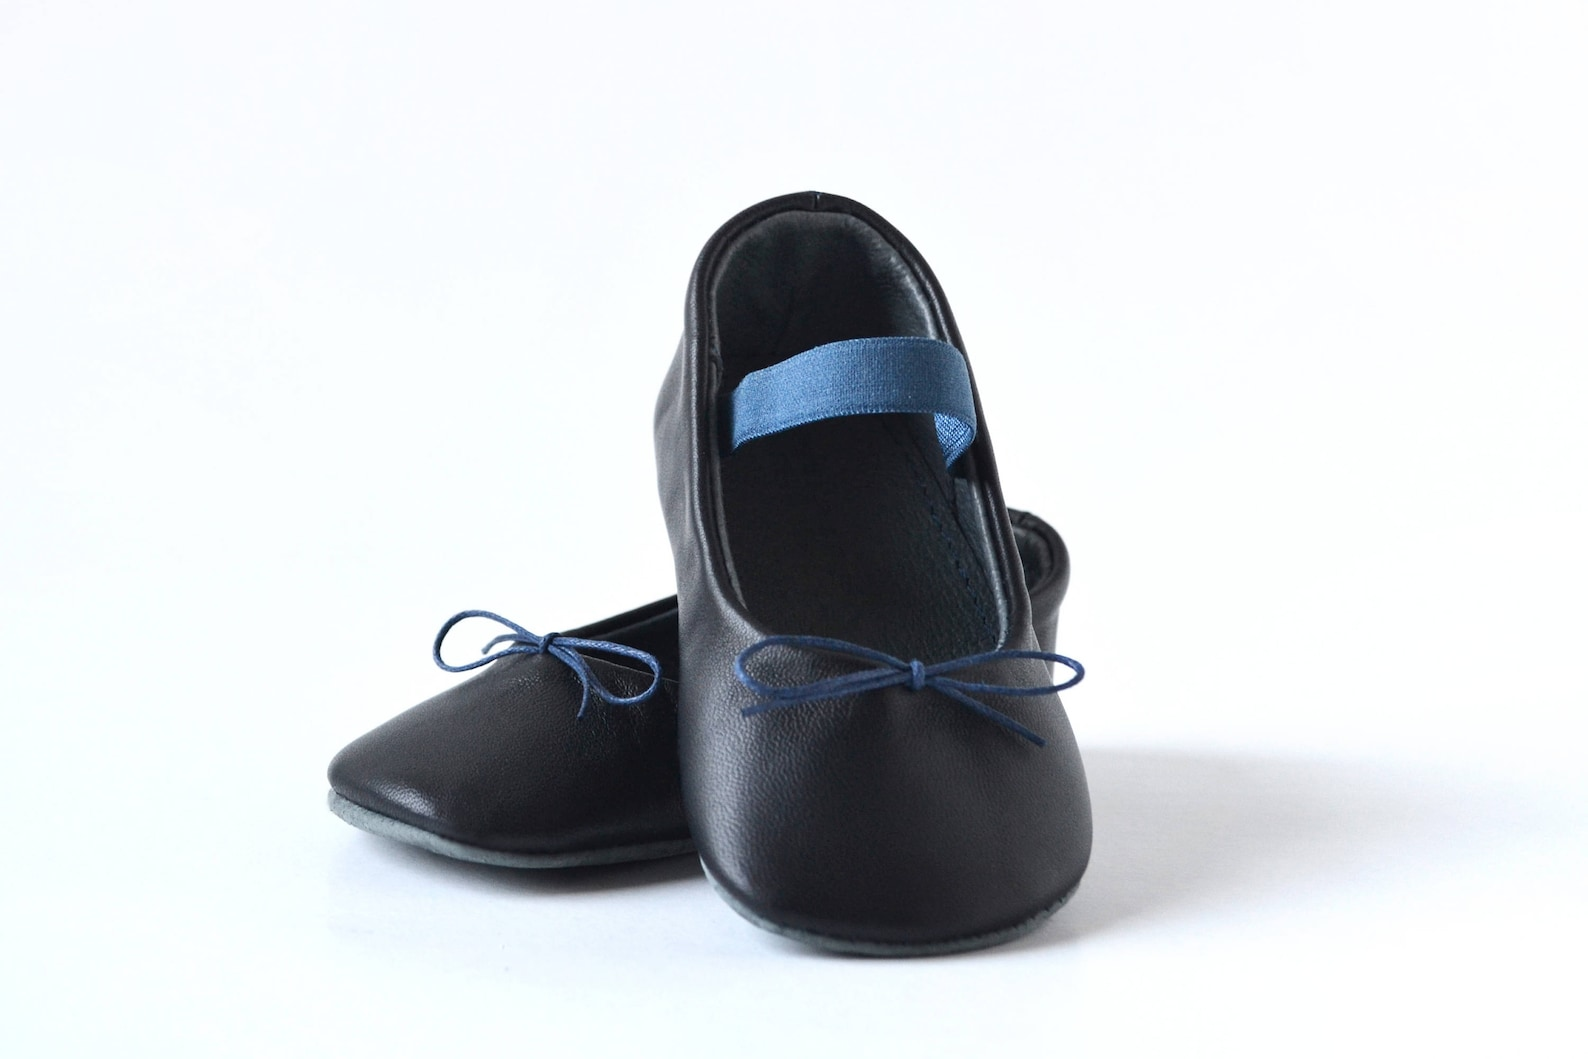 baby girl ballerina shoes, baby girl ballet slippers, navy blue baby shoes, baby leather shoes, baby dress shoes, baby girl show